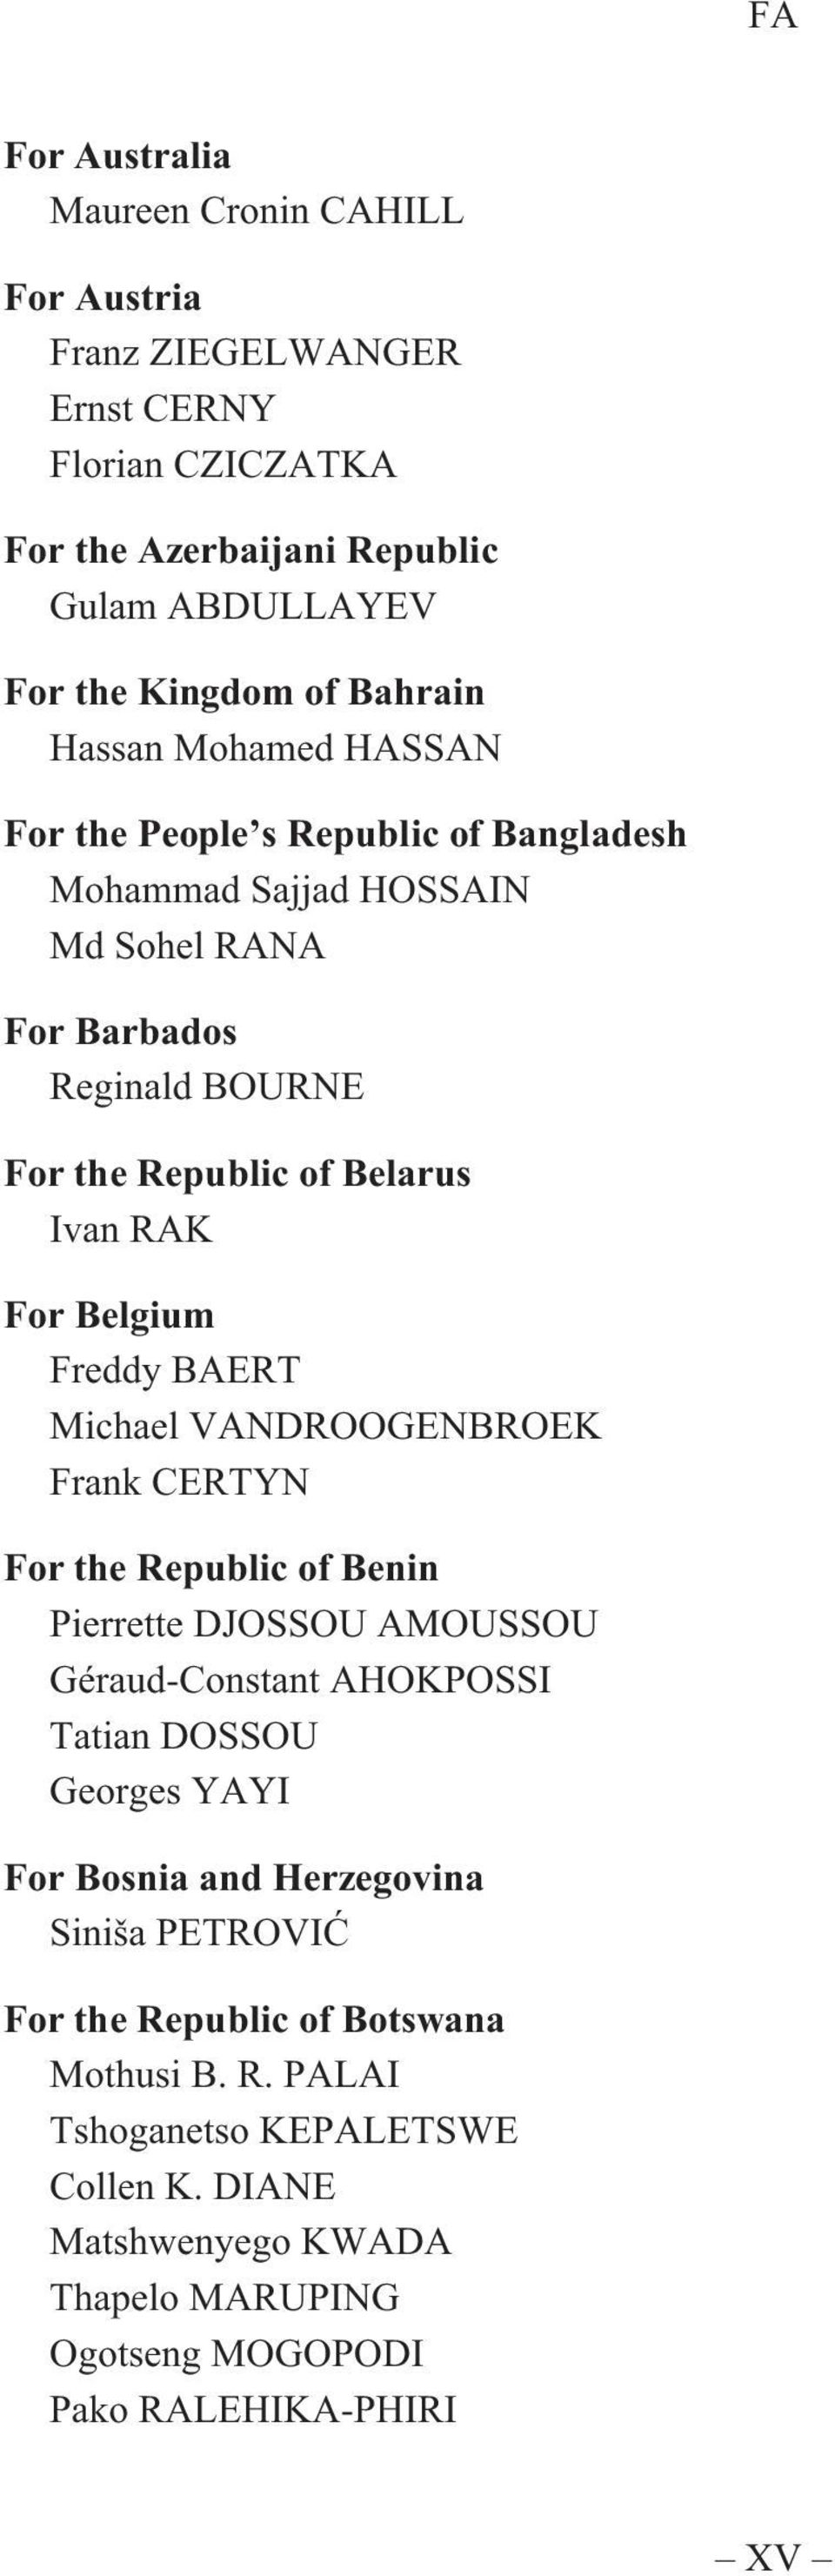 Freddy BAERT Michael VANDROOGENBROEK Frank CERTYN For the Republic of Benin Pierrette DJOSSOU AMOUSSOU Géraud-Constant AHOKPOSSI Tatian DOSSOU Georges YAYI For Bosnia and